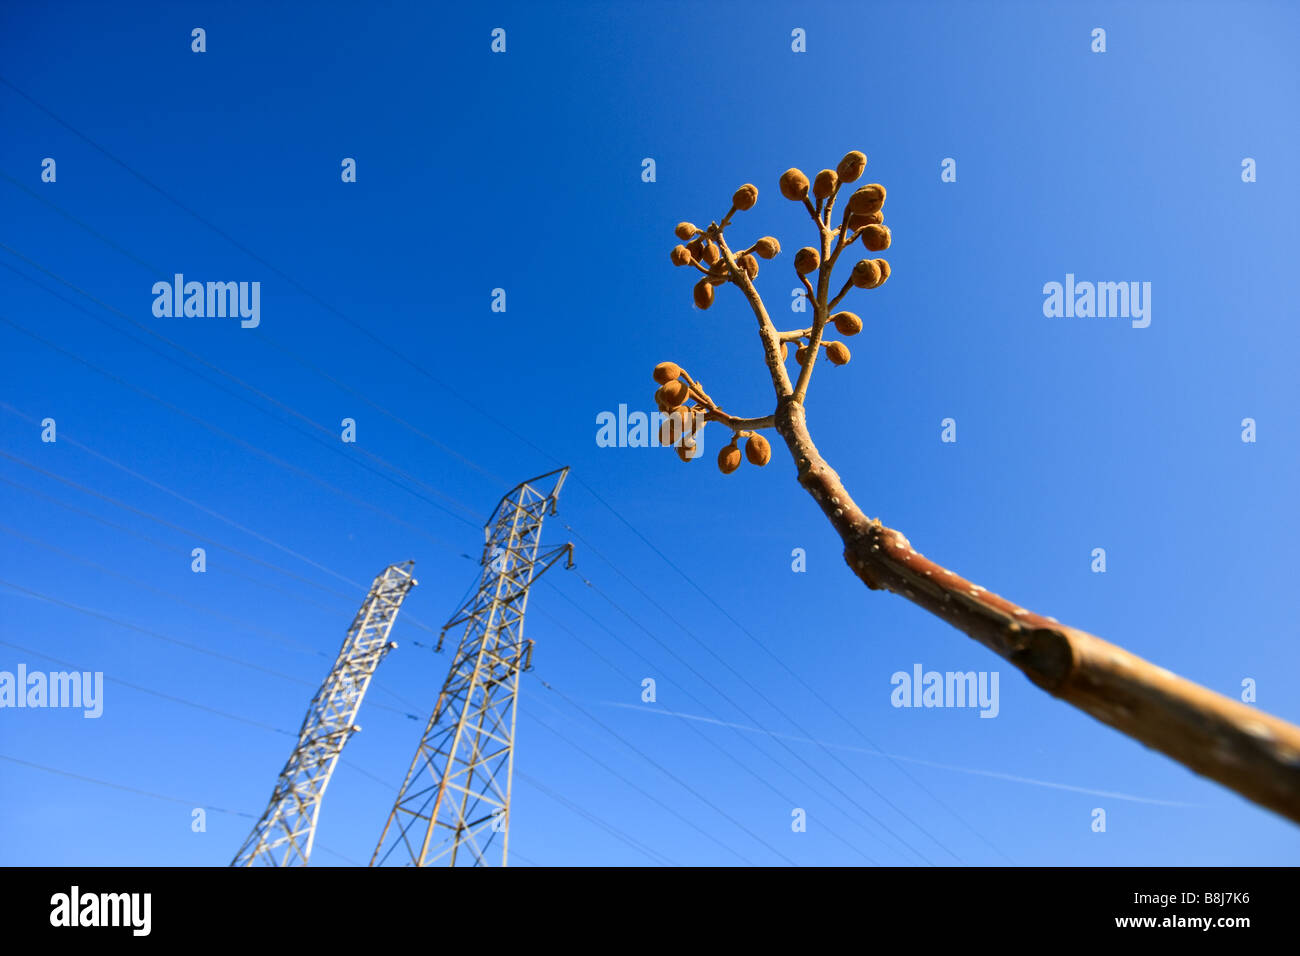 electric poles in the distance Stock Photo: 22528778 - Alamy